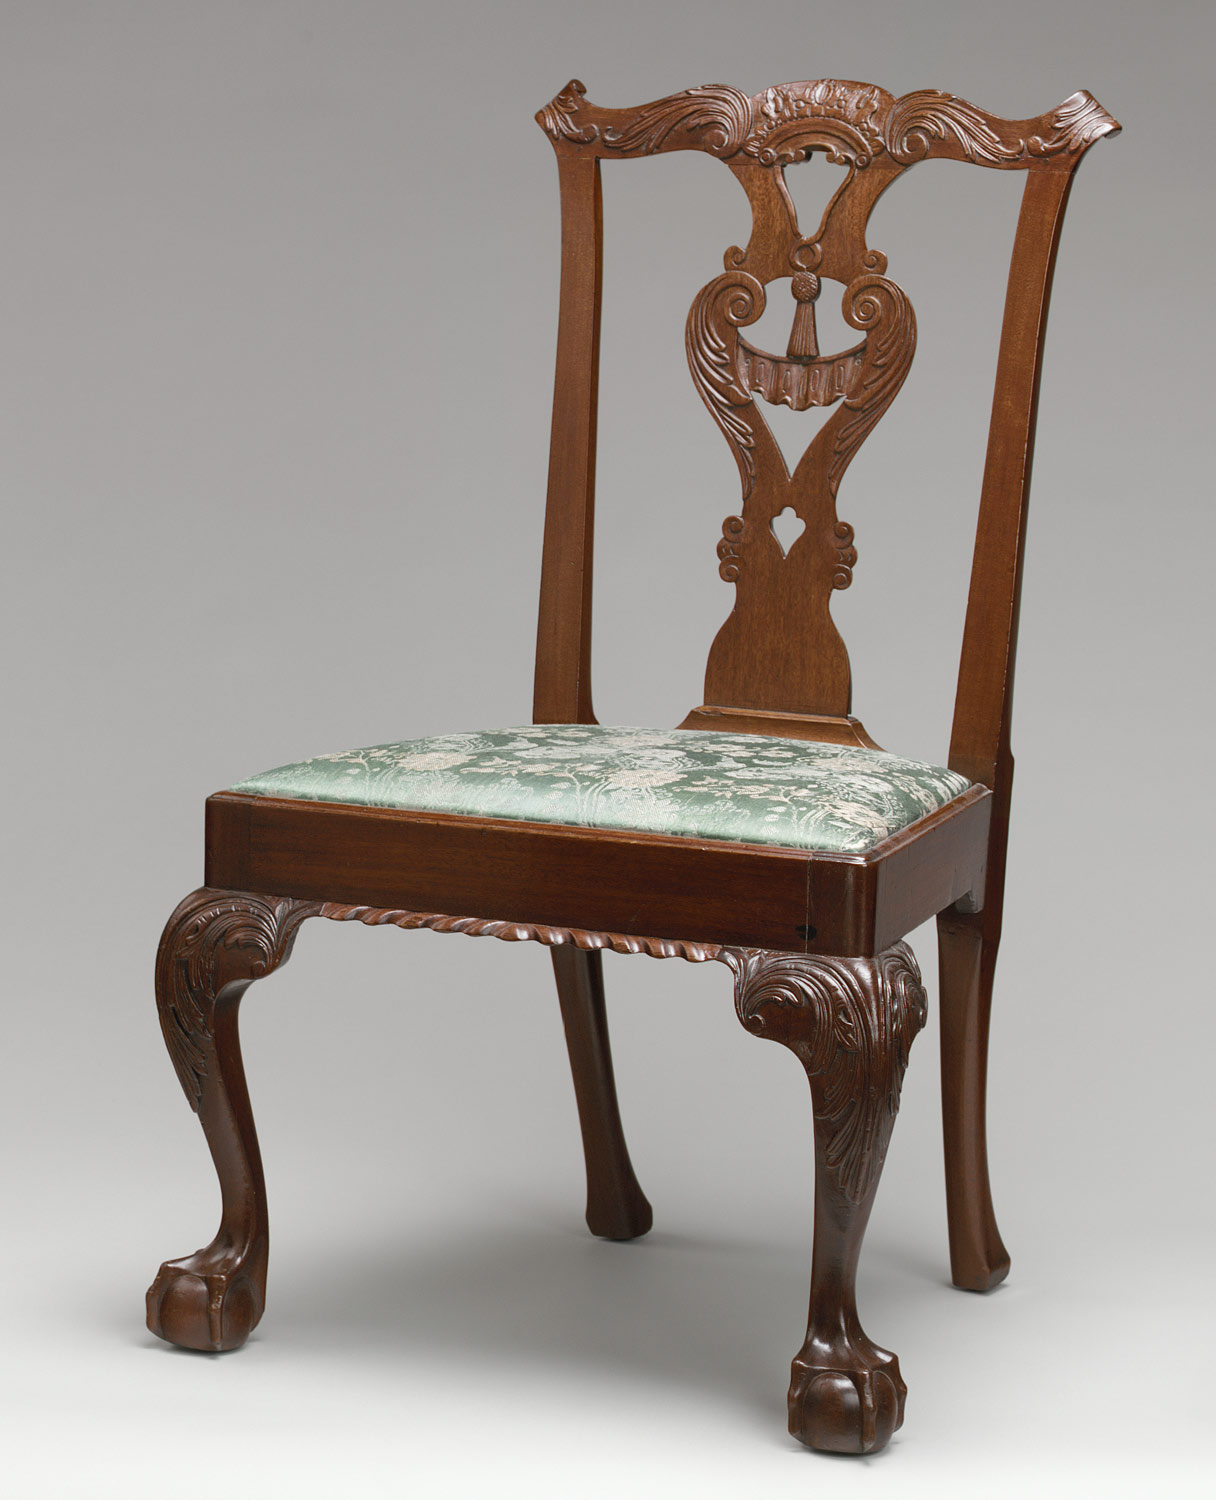 chair antique styles flipping high upside down american furniture 17301790 queen anne and chippendale